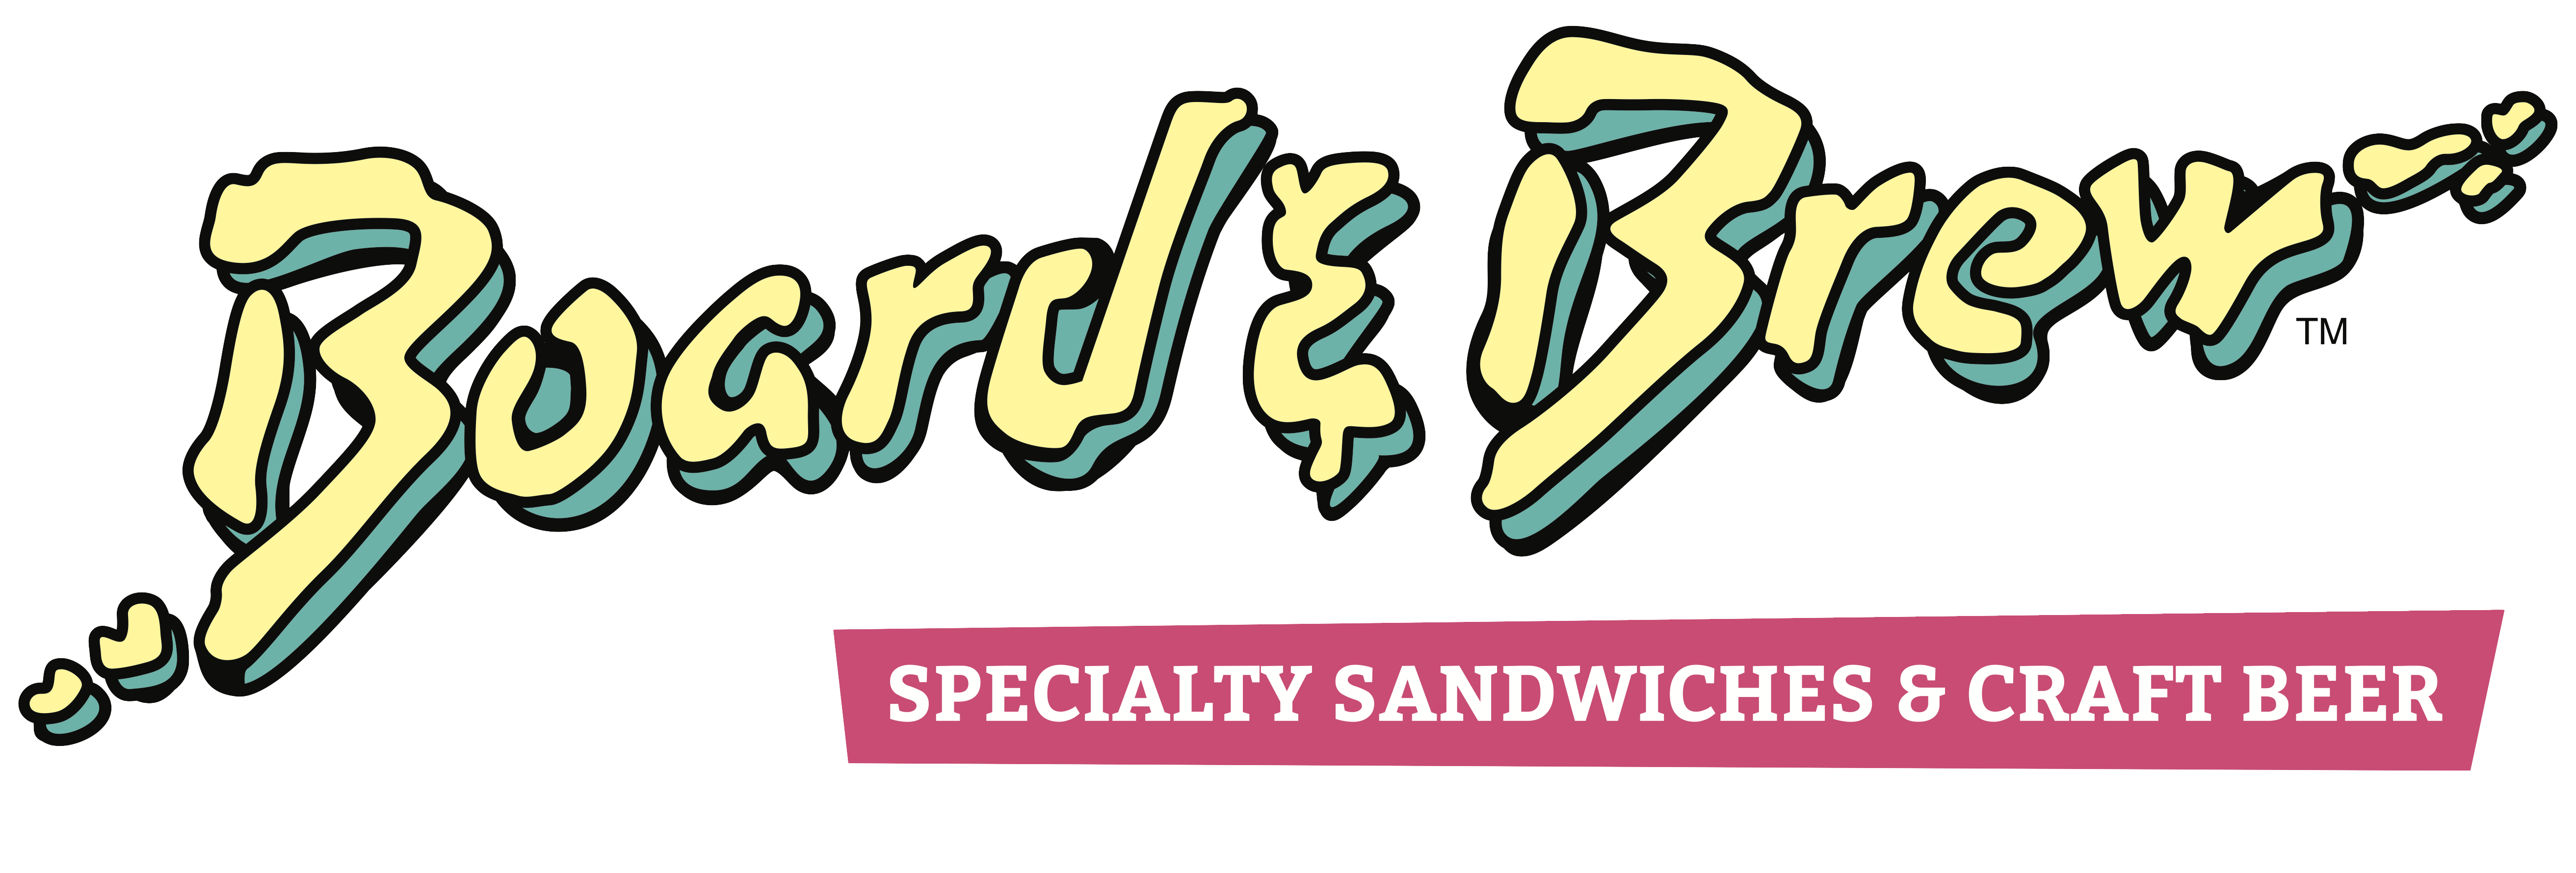 Board & Brew Specialty Sandwiches